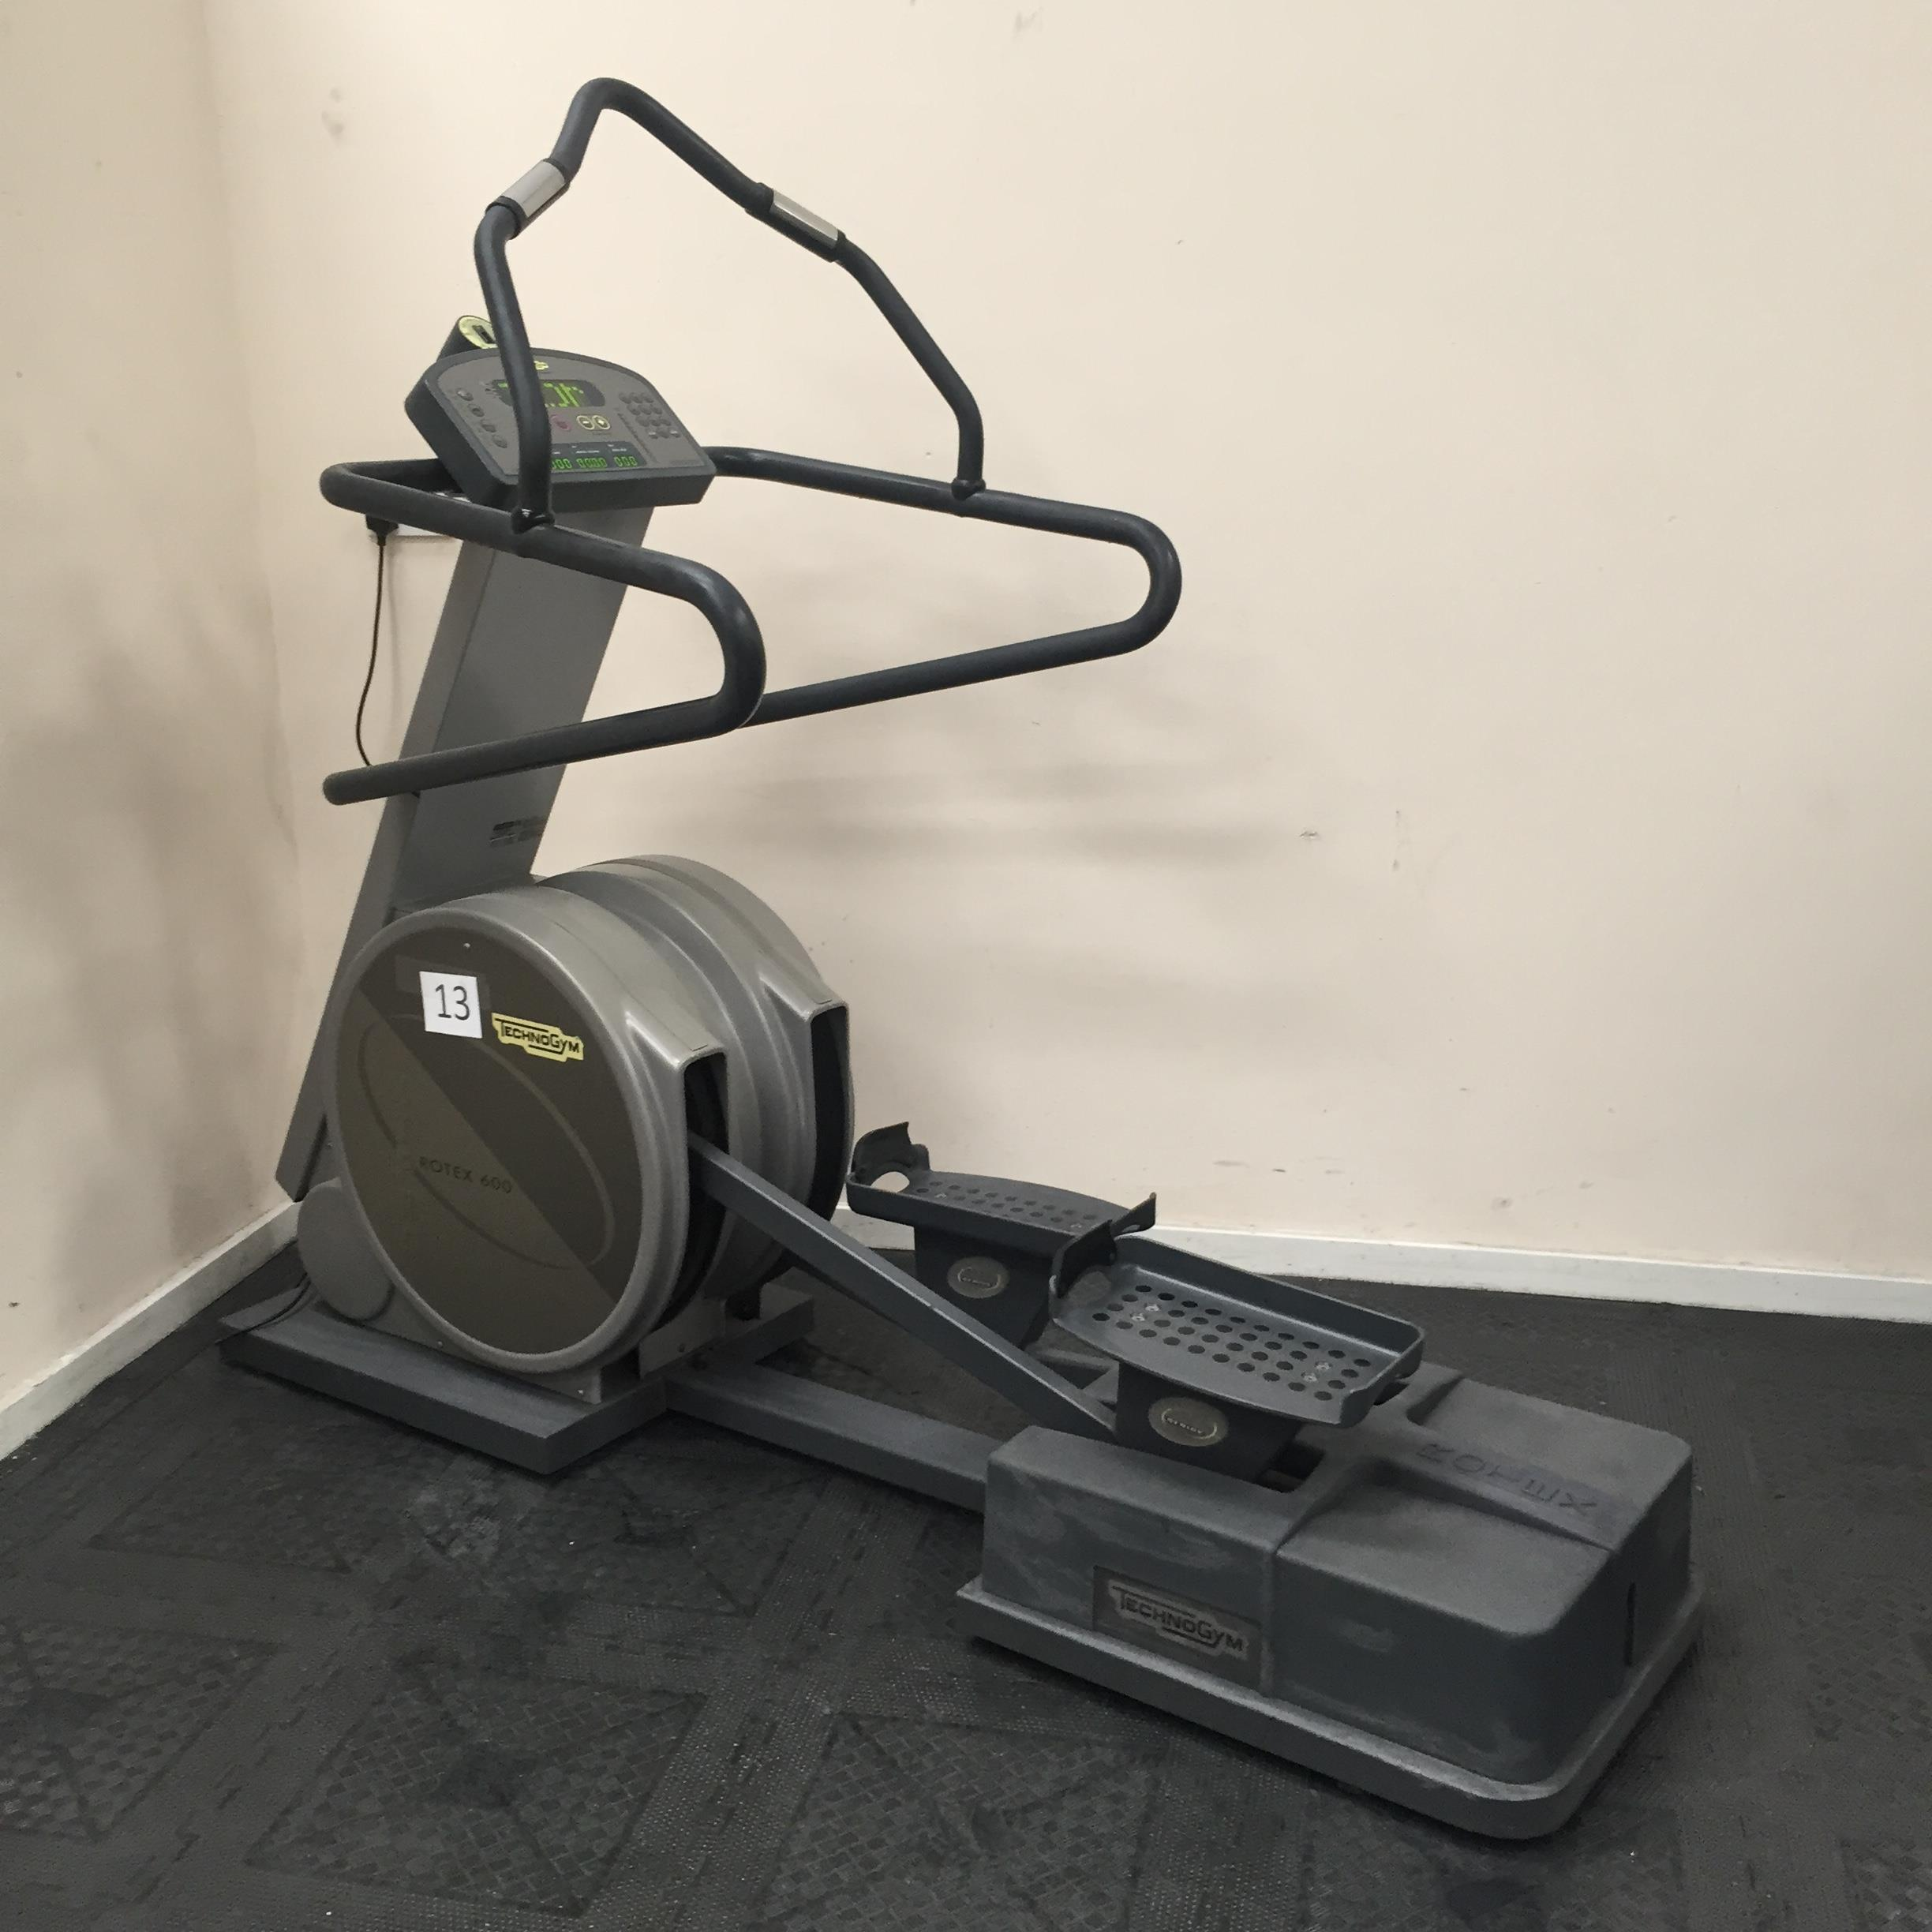 technogym xt pro 600 rotex cross trainer appraisal this. Black Bedroom Furniture Sets. Home Design Ideas